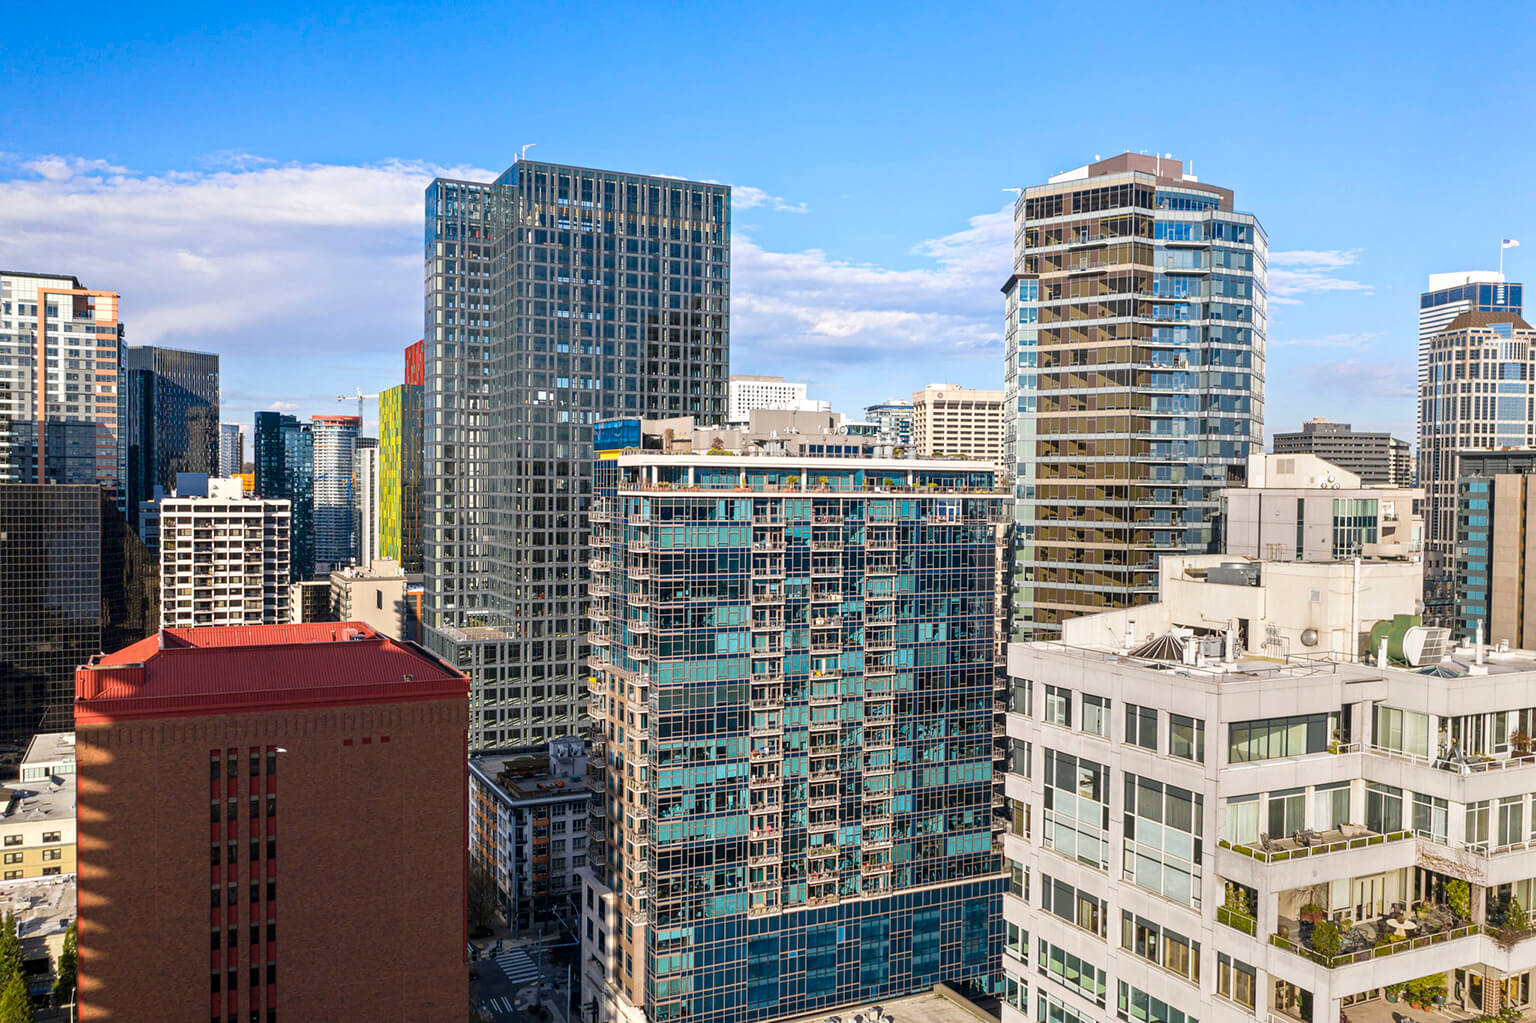 Cristalla is a 22-story luxury condo building built in 2005 on the site of the historic Crystal Pool building